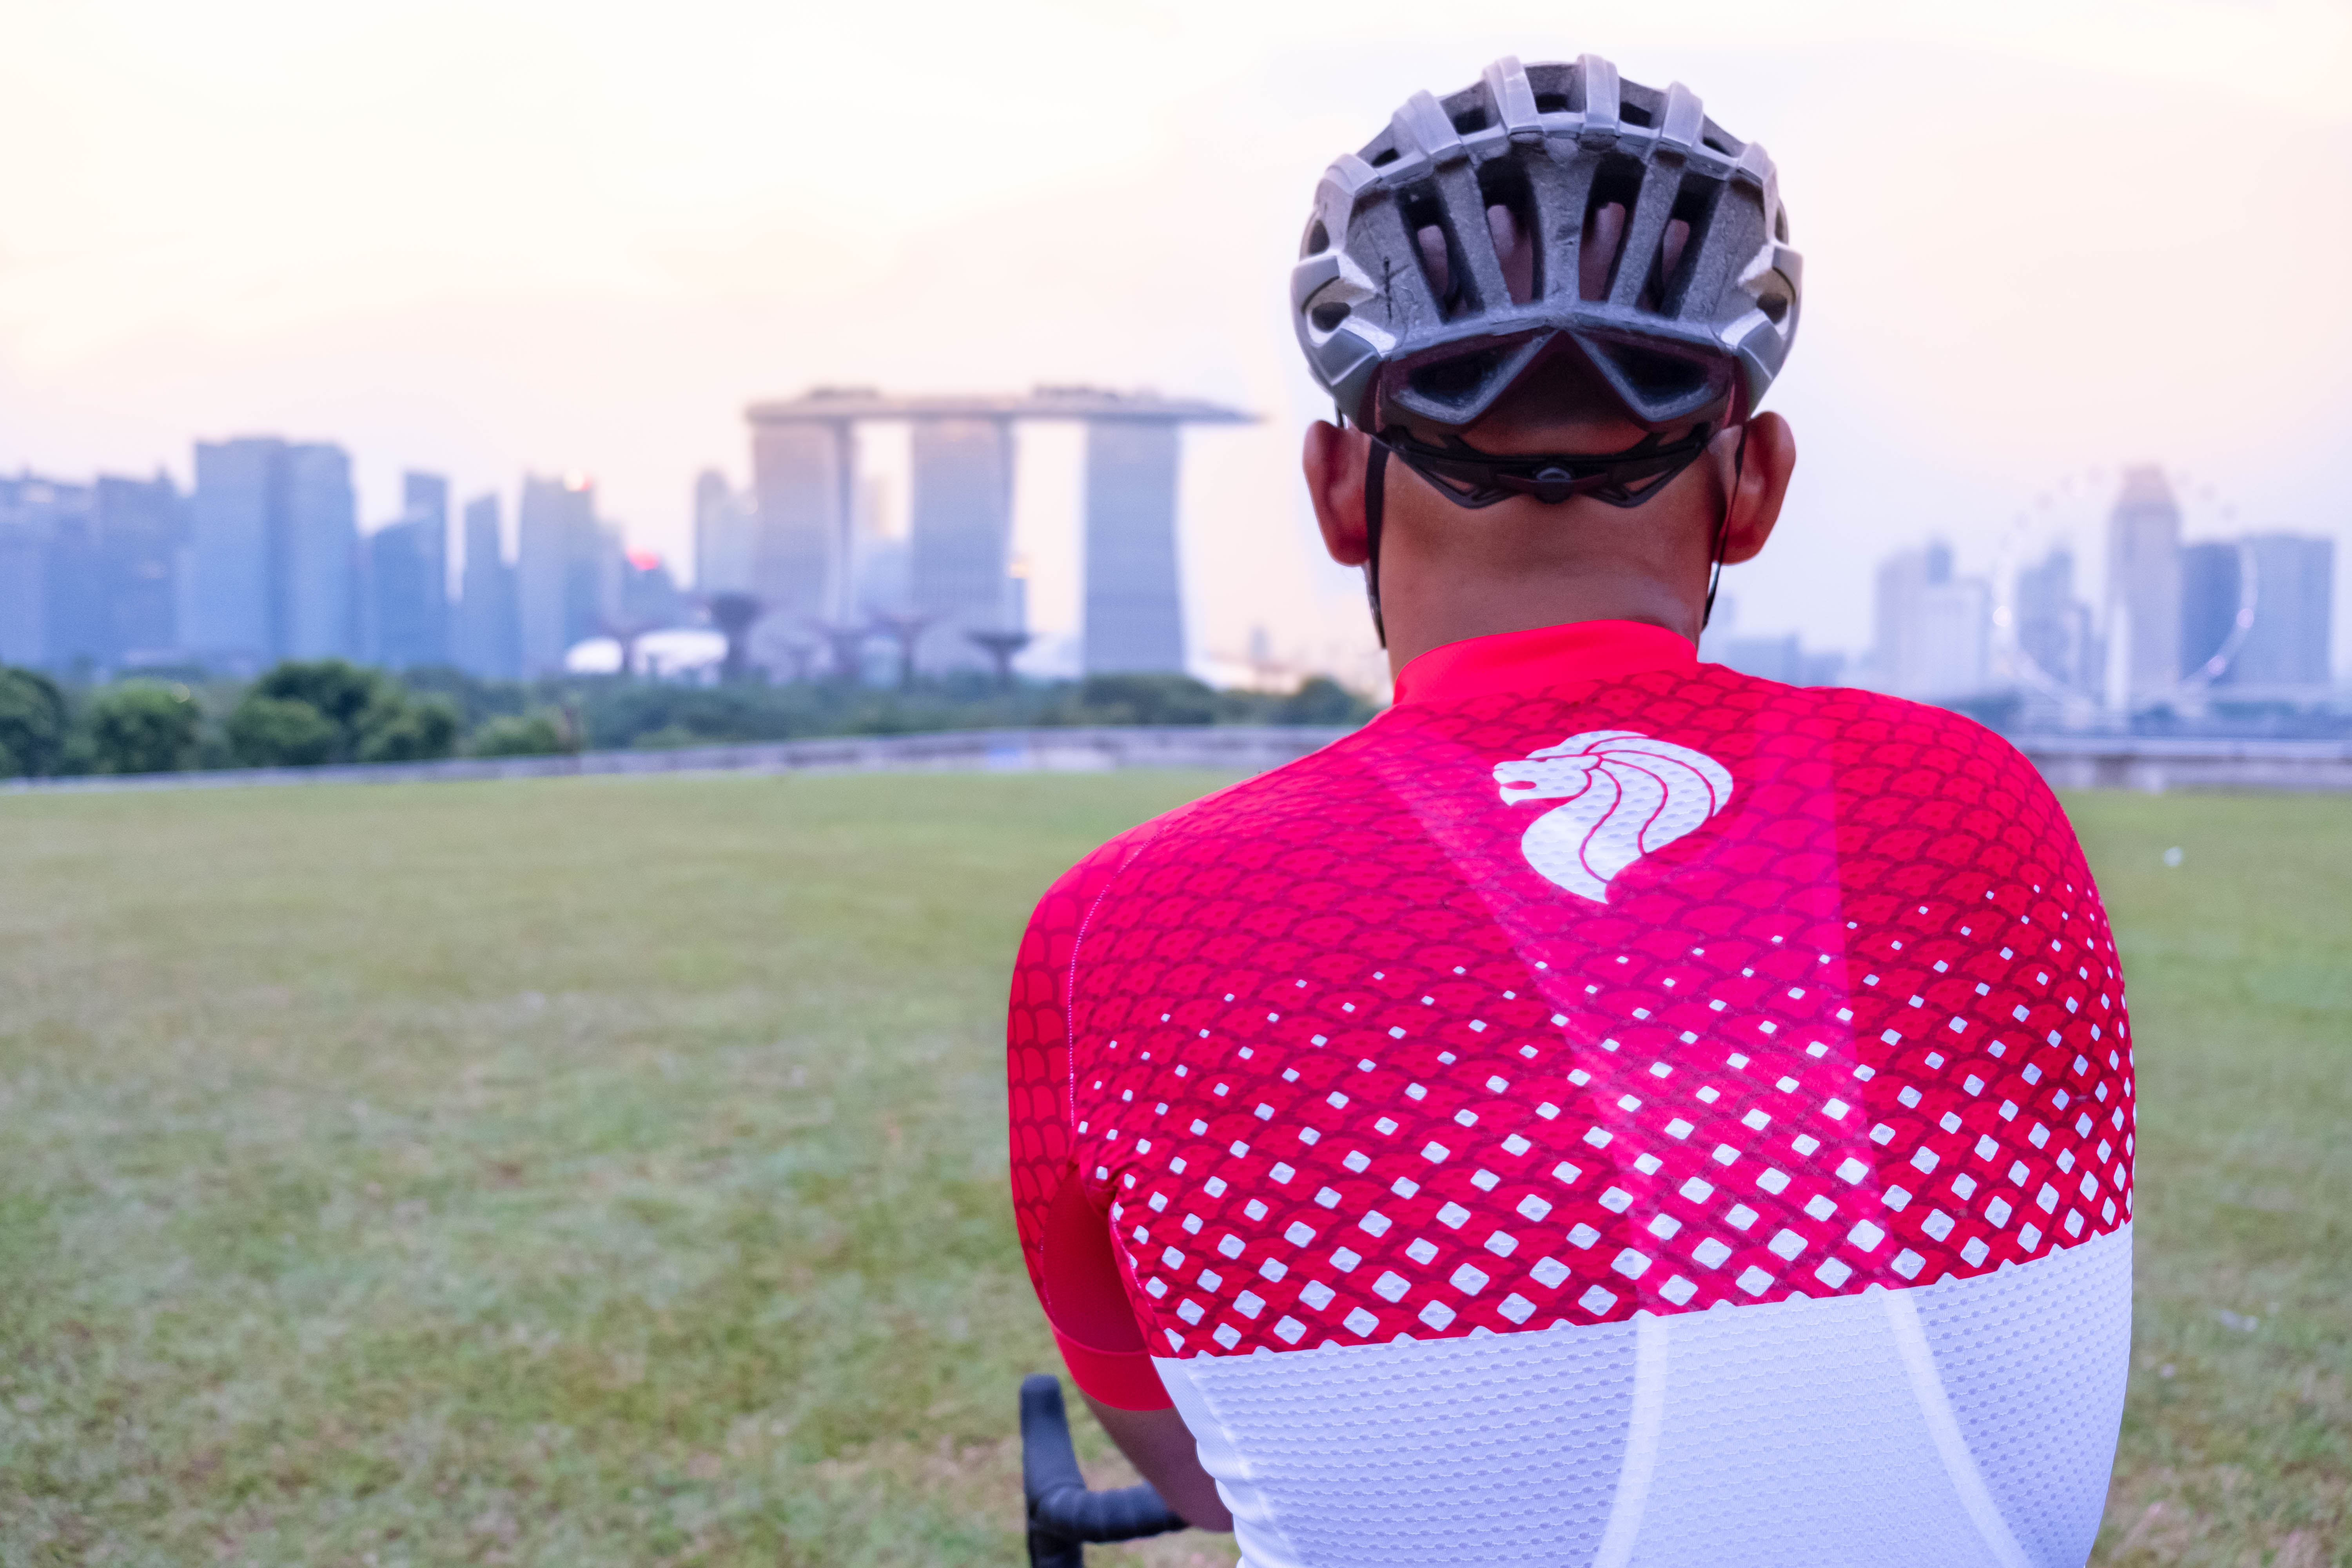 The 'Lion Head' at the back of Odlo's Singapore-inspired cycling jersey